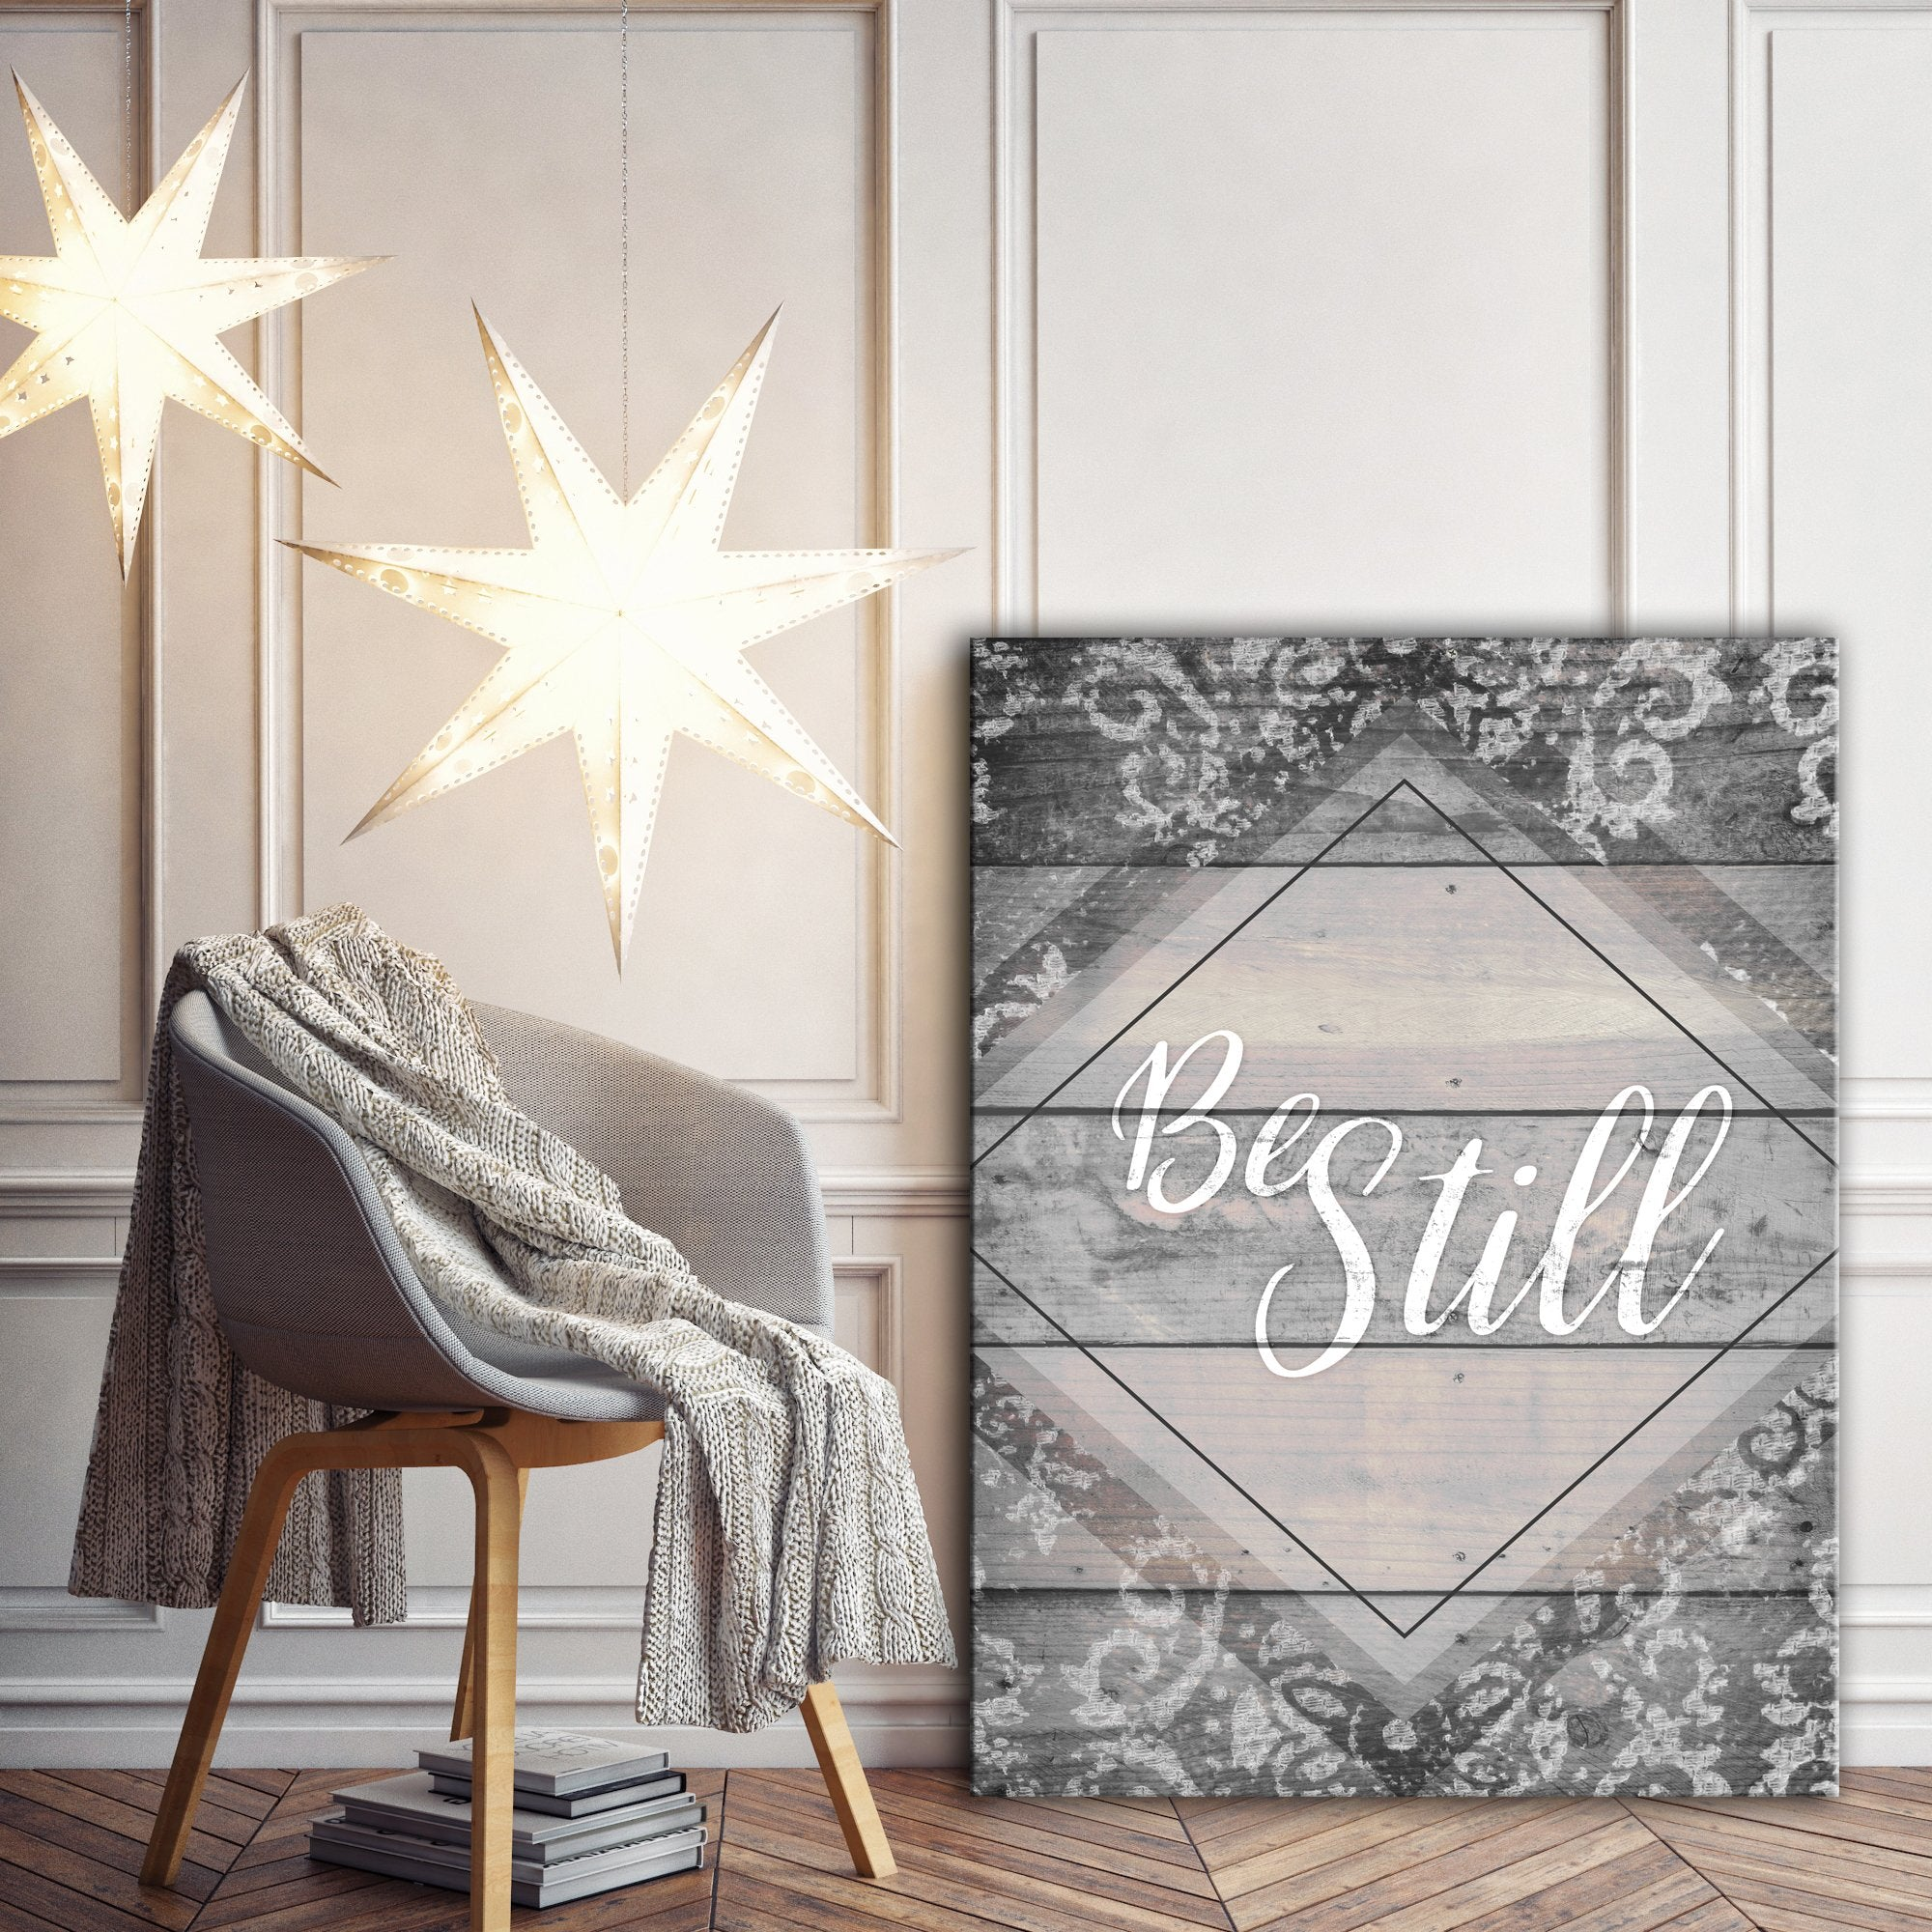 Home Wall Art: Be Still Wall Art (Wood Frame Ready To Hang)